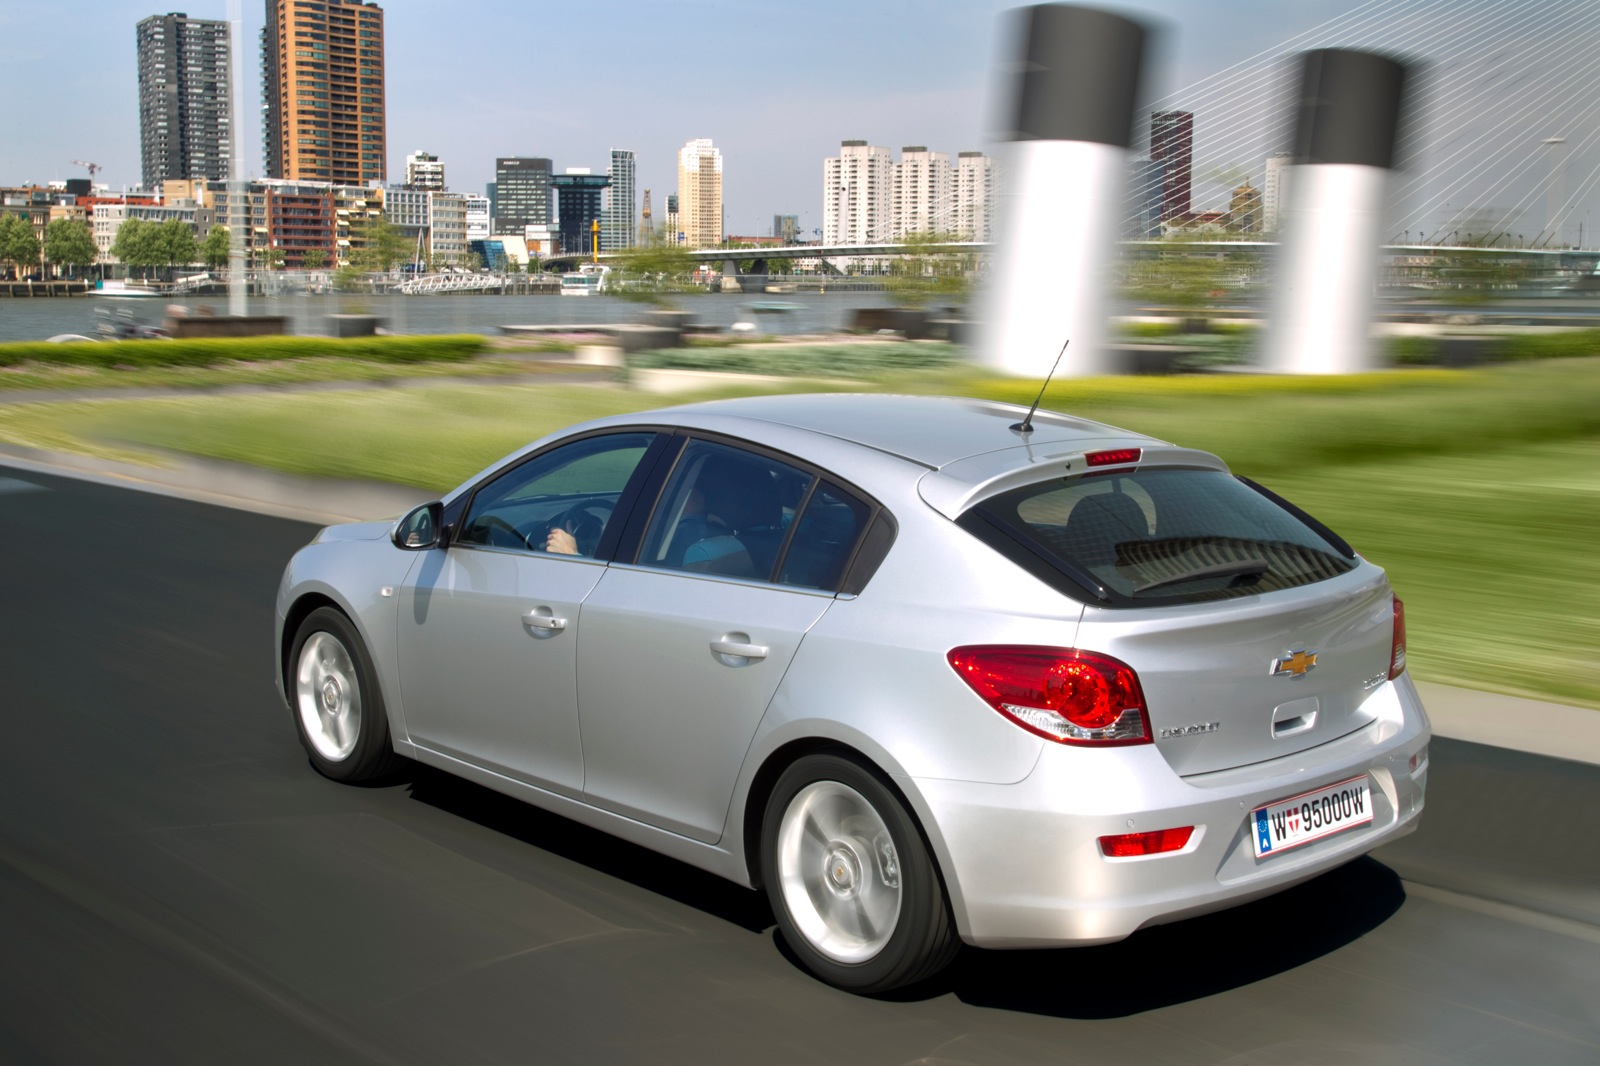 CHEVROLET Cruze HB5 specs & photos - 2011, 2012, 2013, 2014, 2015, 2016, 2017, 2018, 2019 ...